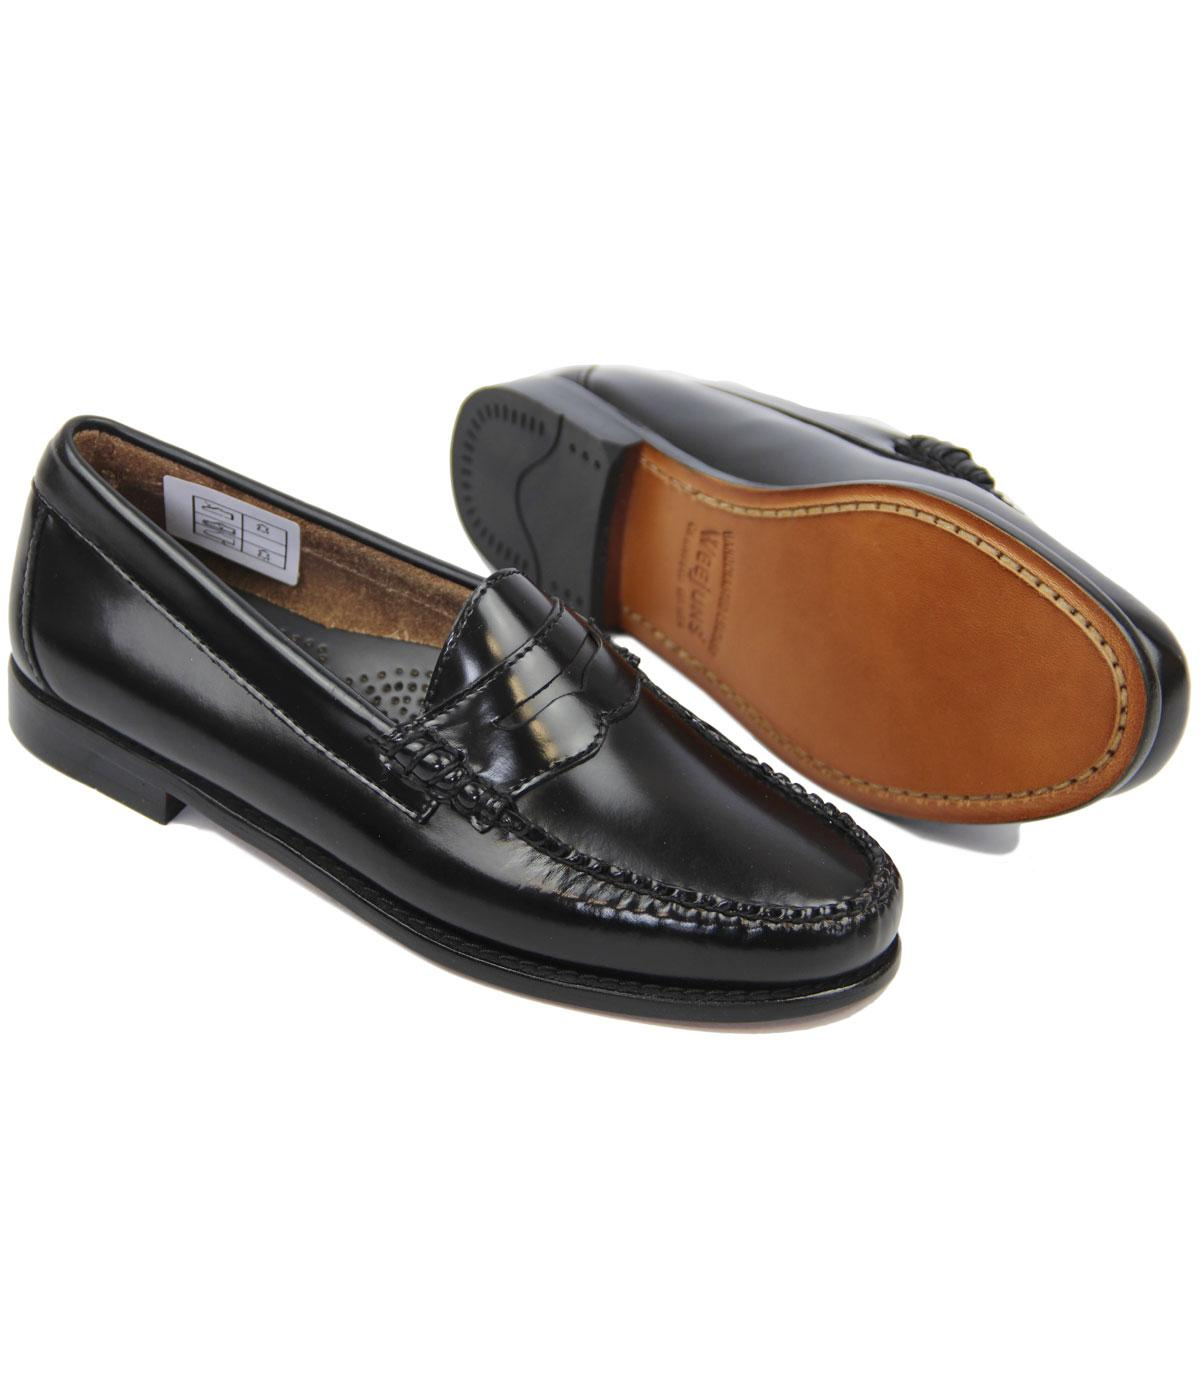 BASS WEEJUNS Womens Retro 60s Mod Black Leather Penny Loafers